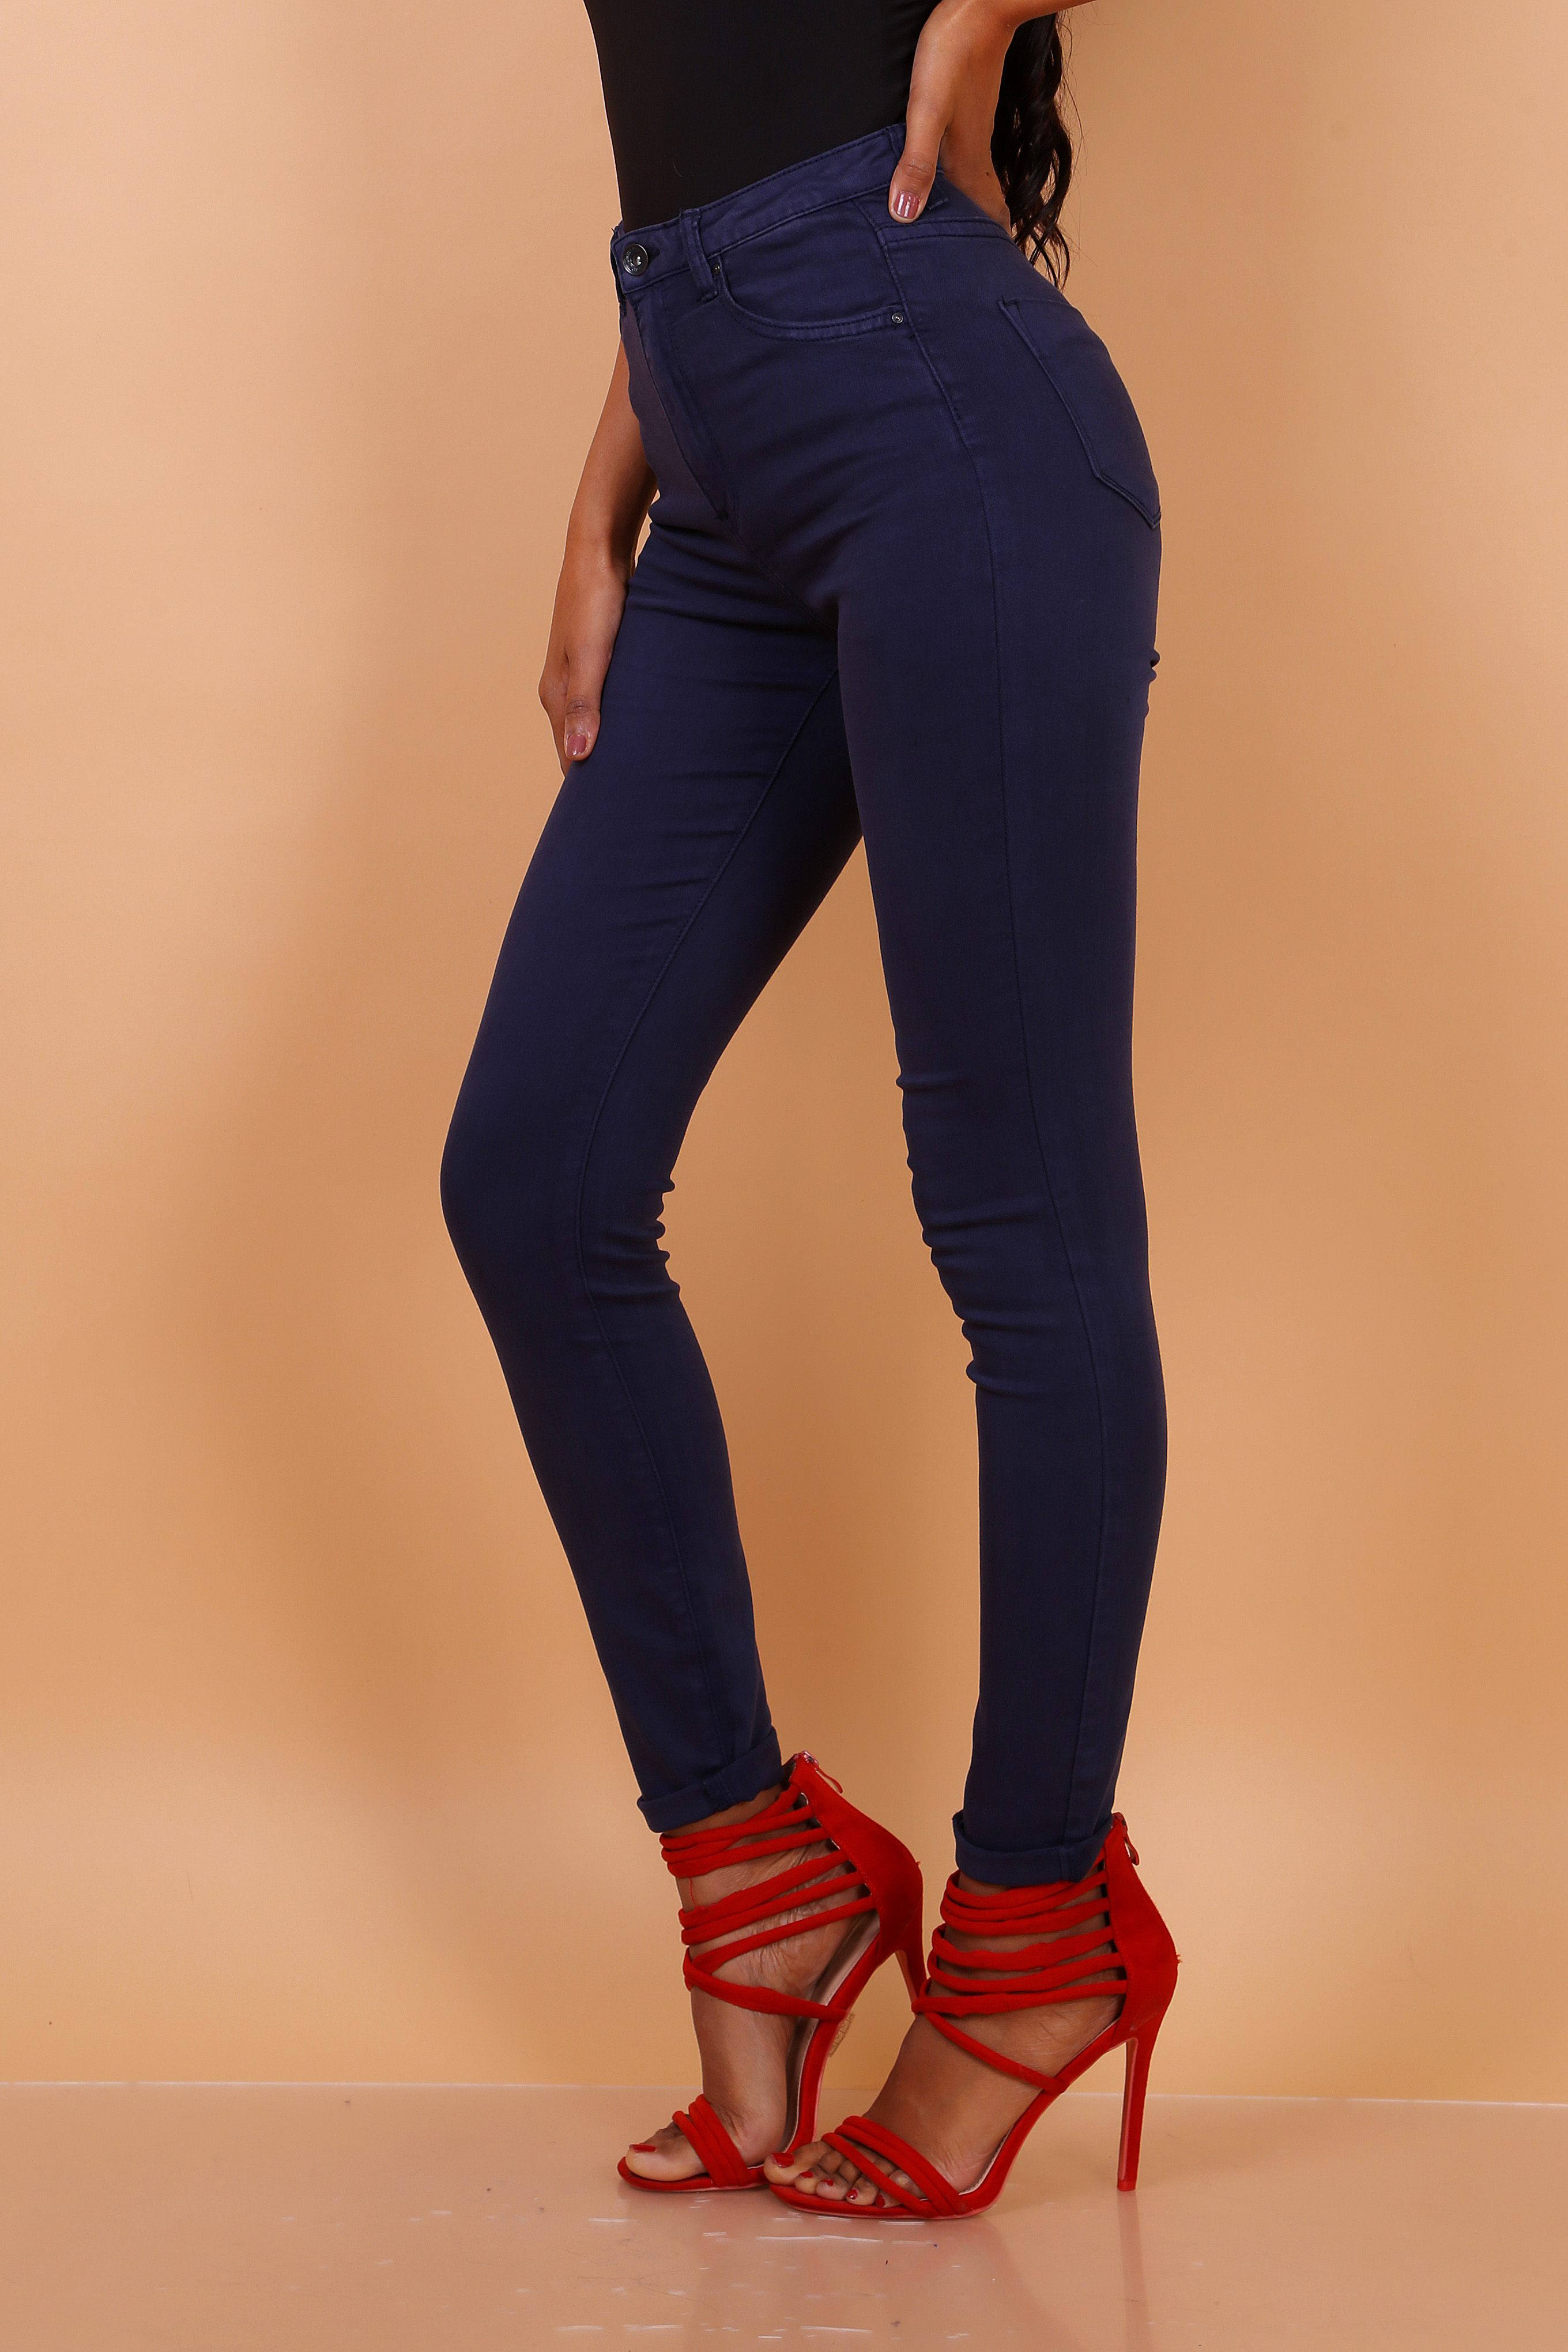 Toxik 3 Jeans | L185-25 Faded Navy Blue High Waisted Super Stretch Jeans